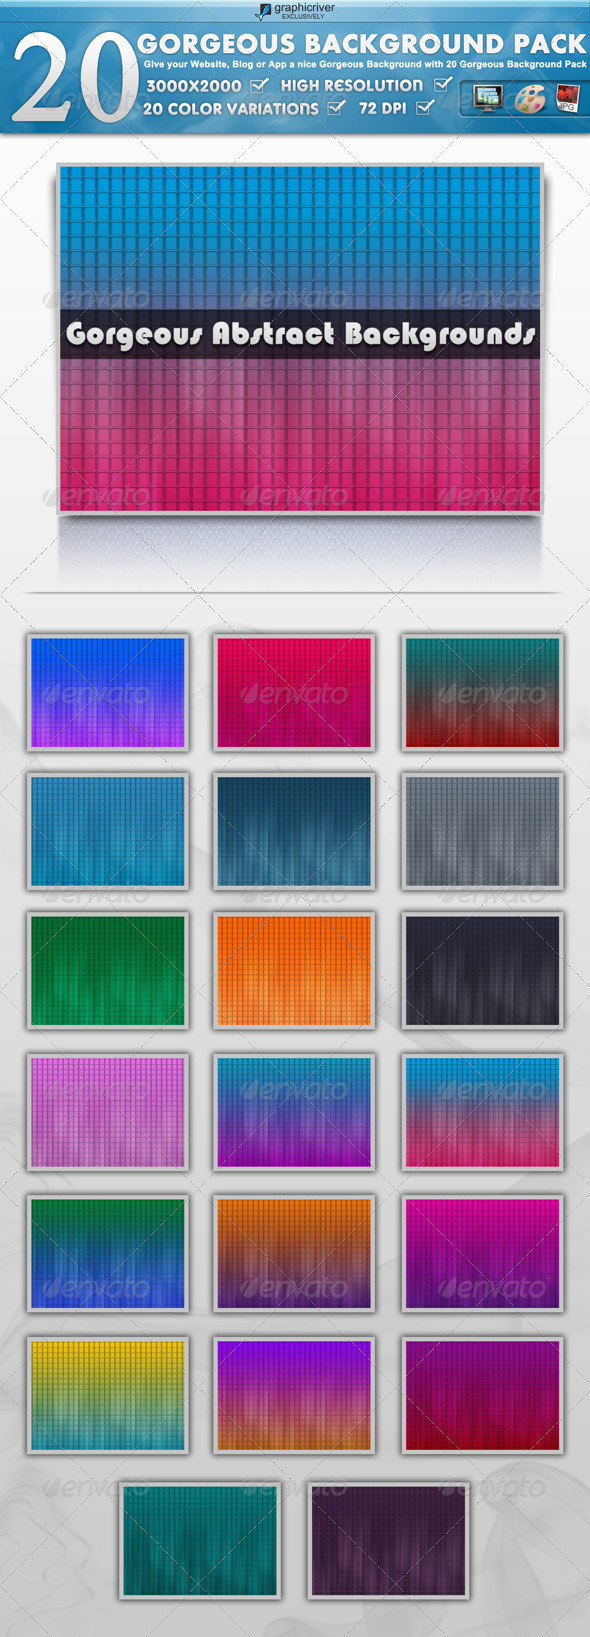 20 Modern & Colorful Background Pack - Backgrounds Graphics